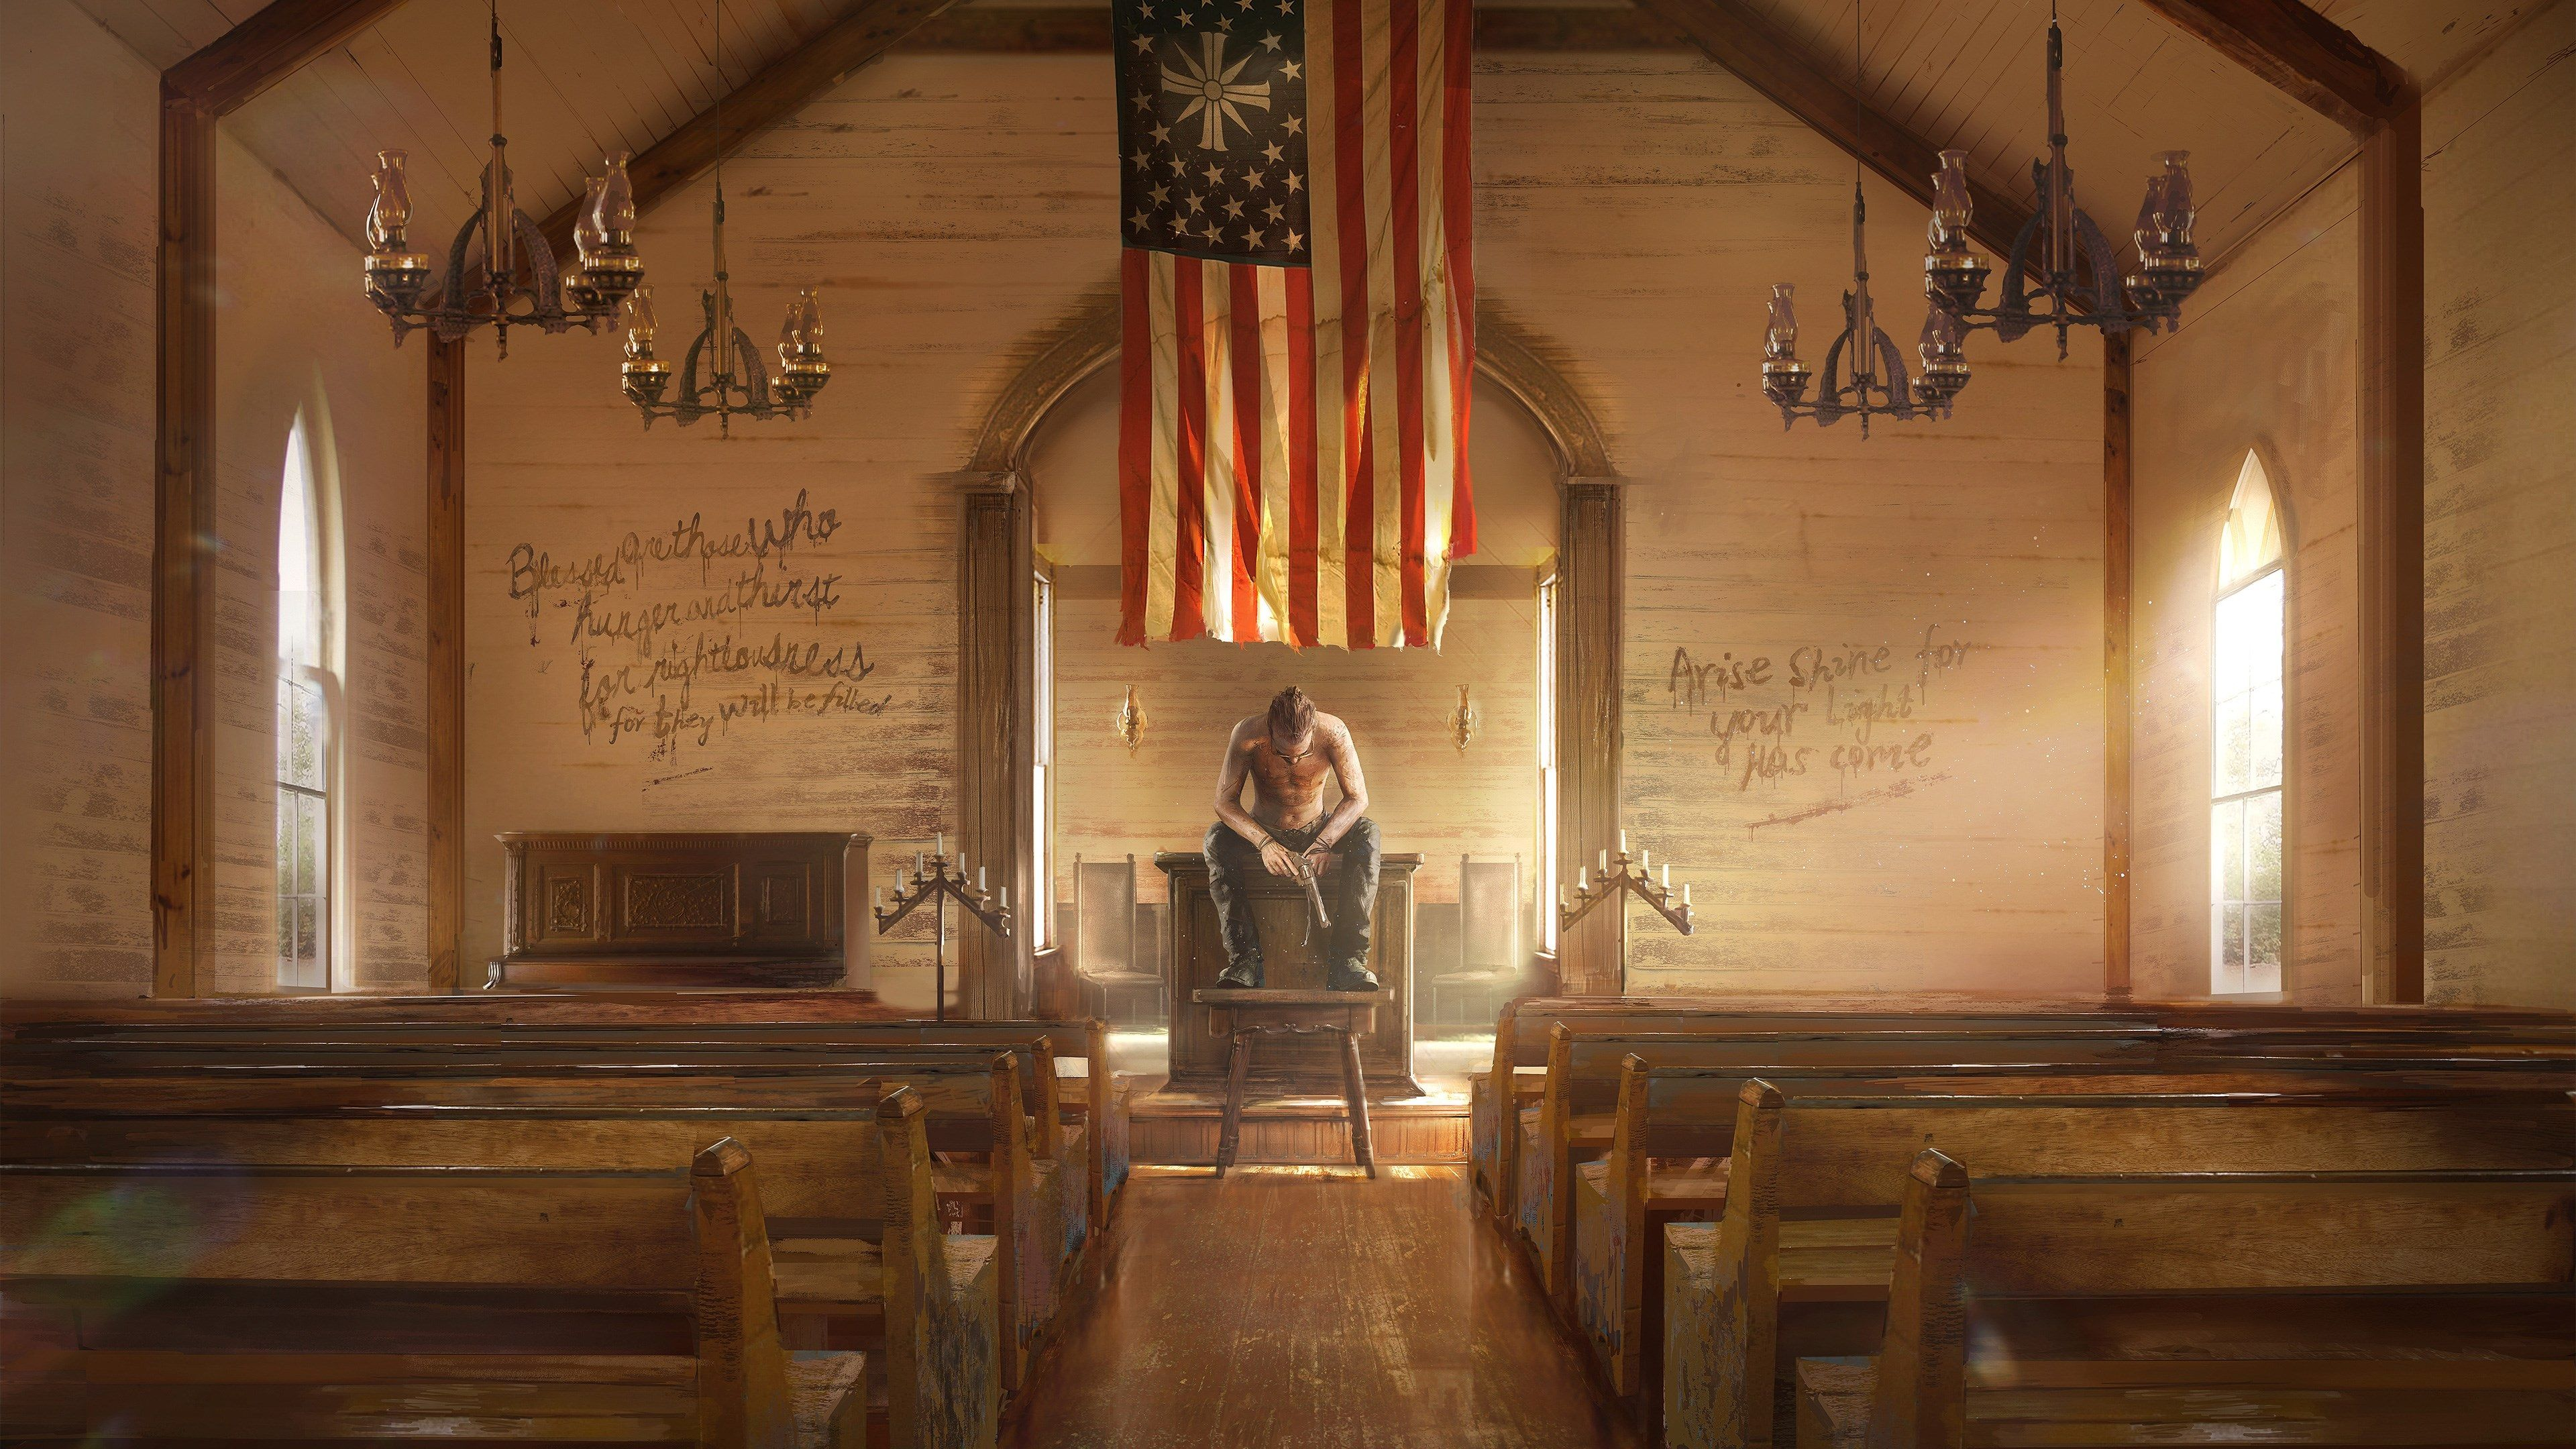 3840x2160 Far Cry 5 4k Computer Hd Wallpapers Free Download 8k Wallpaper Hd Wallpaper 4k Wallpaper 3840x2160